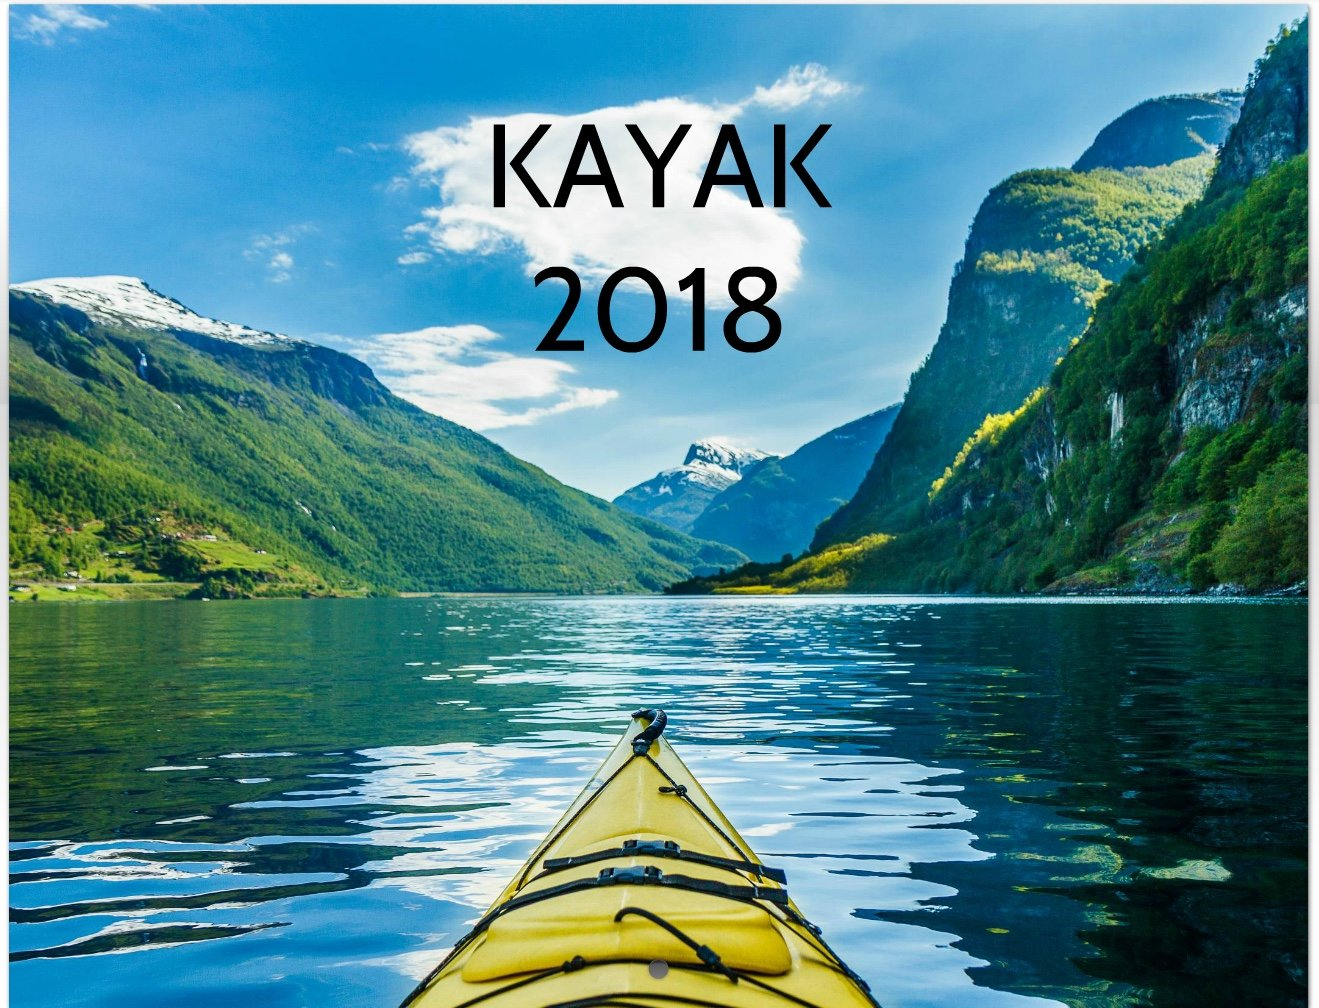 2018 Kayak Wall Calendar